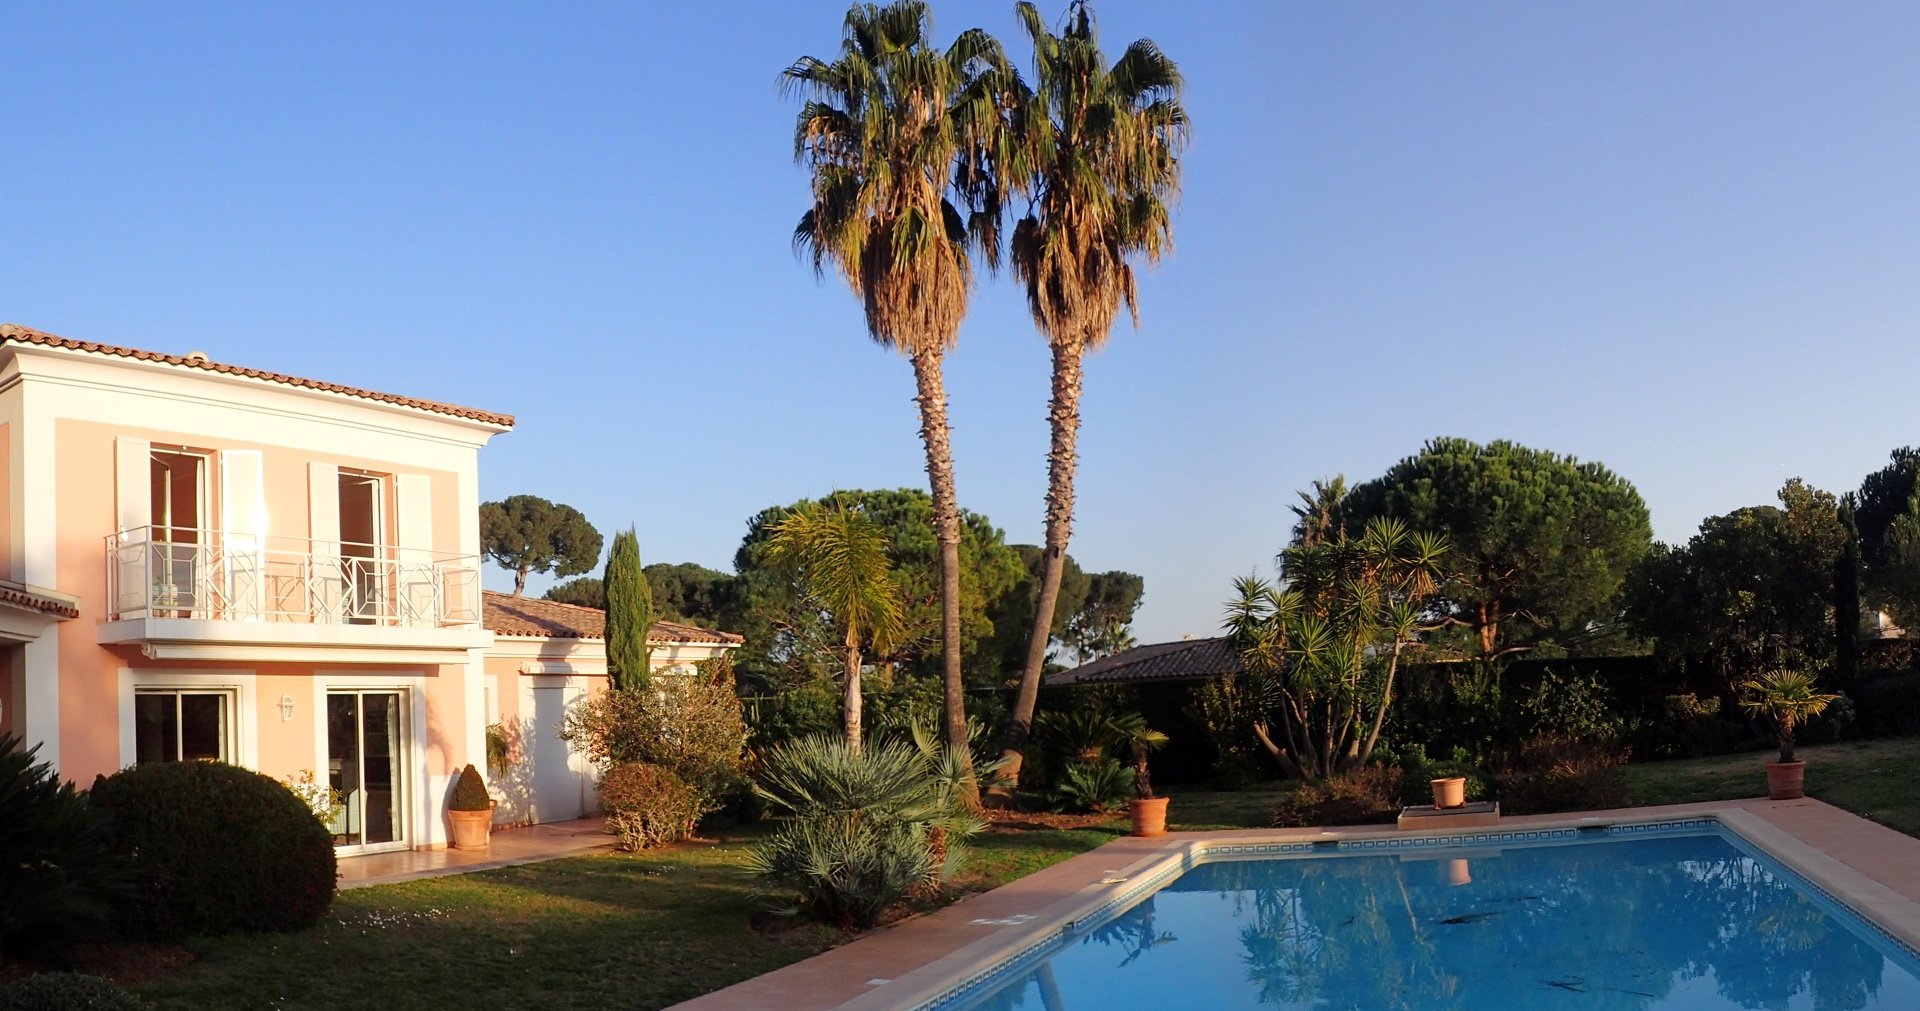 CAP D'ANTIBES - PRIVATE SECURED DOMAIN -